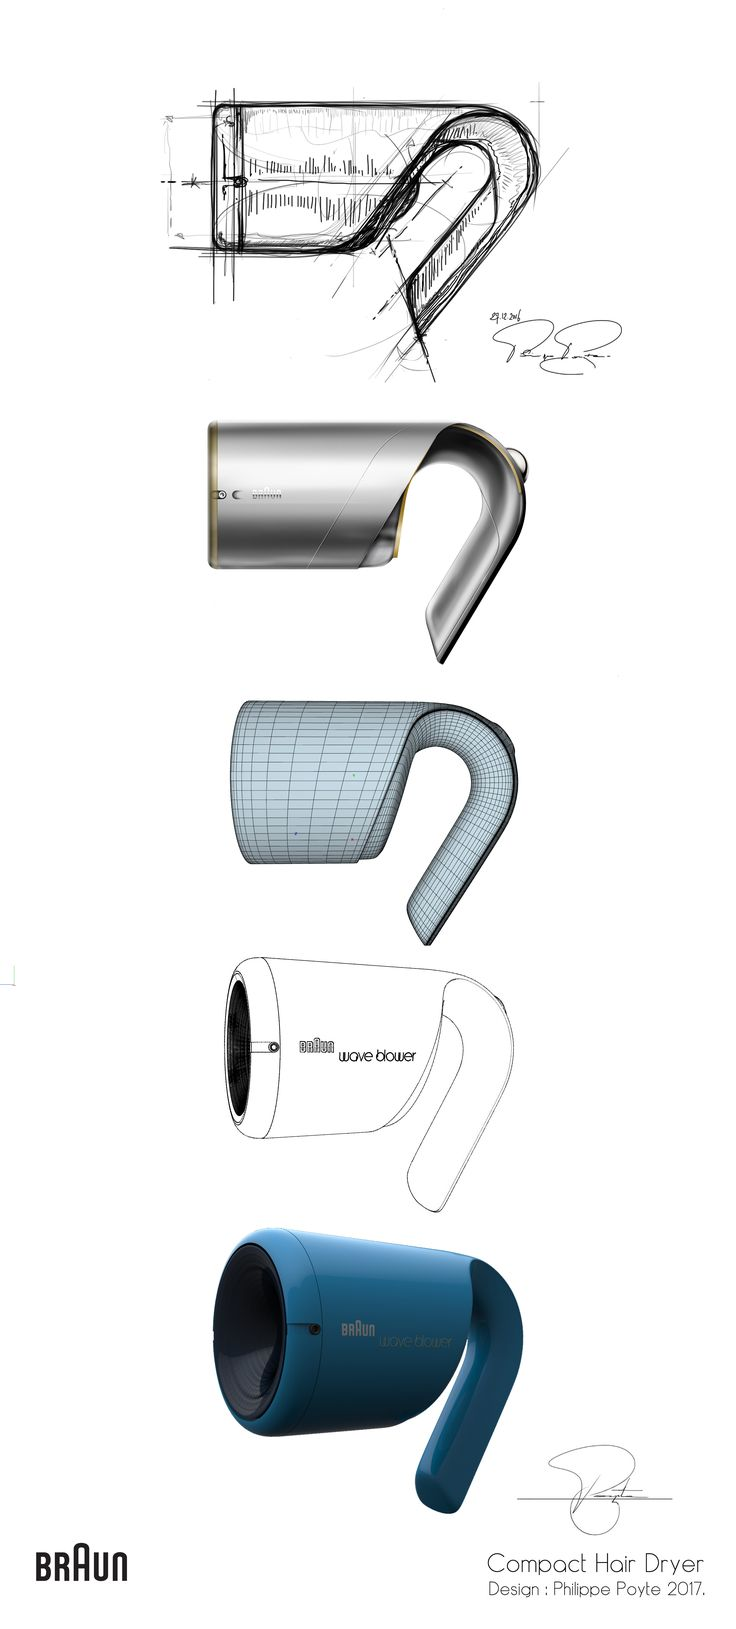 Braun Compact Hair Dryer - Design by Philippe Poyte 2017.